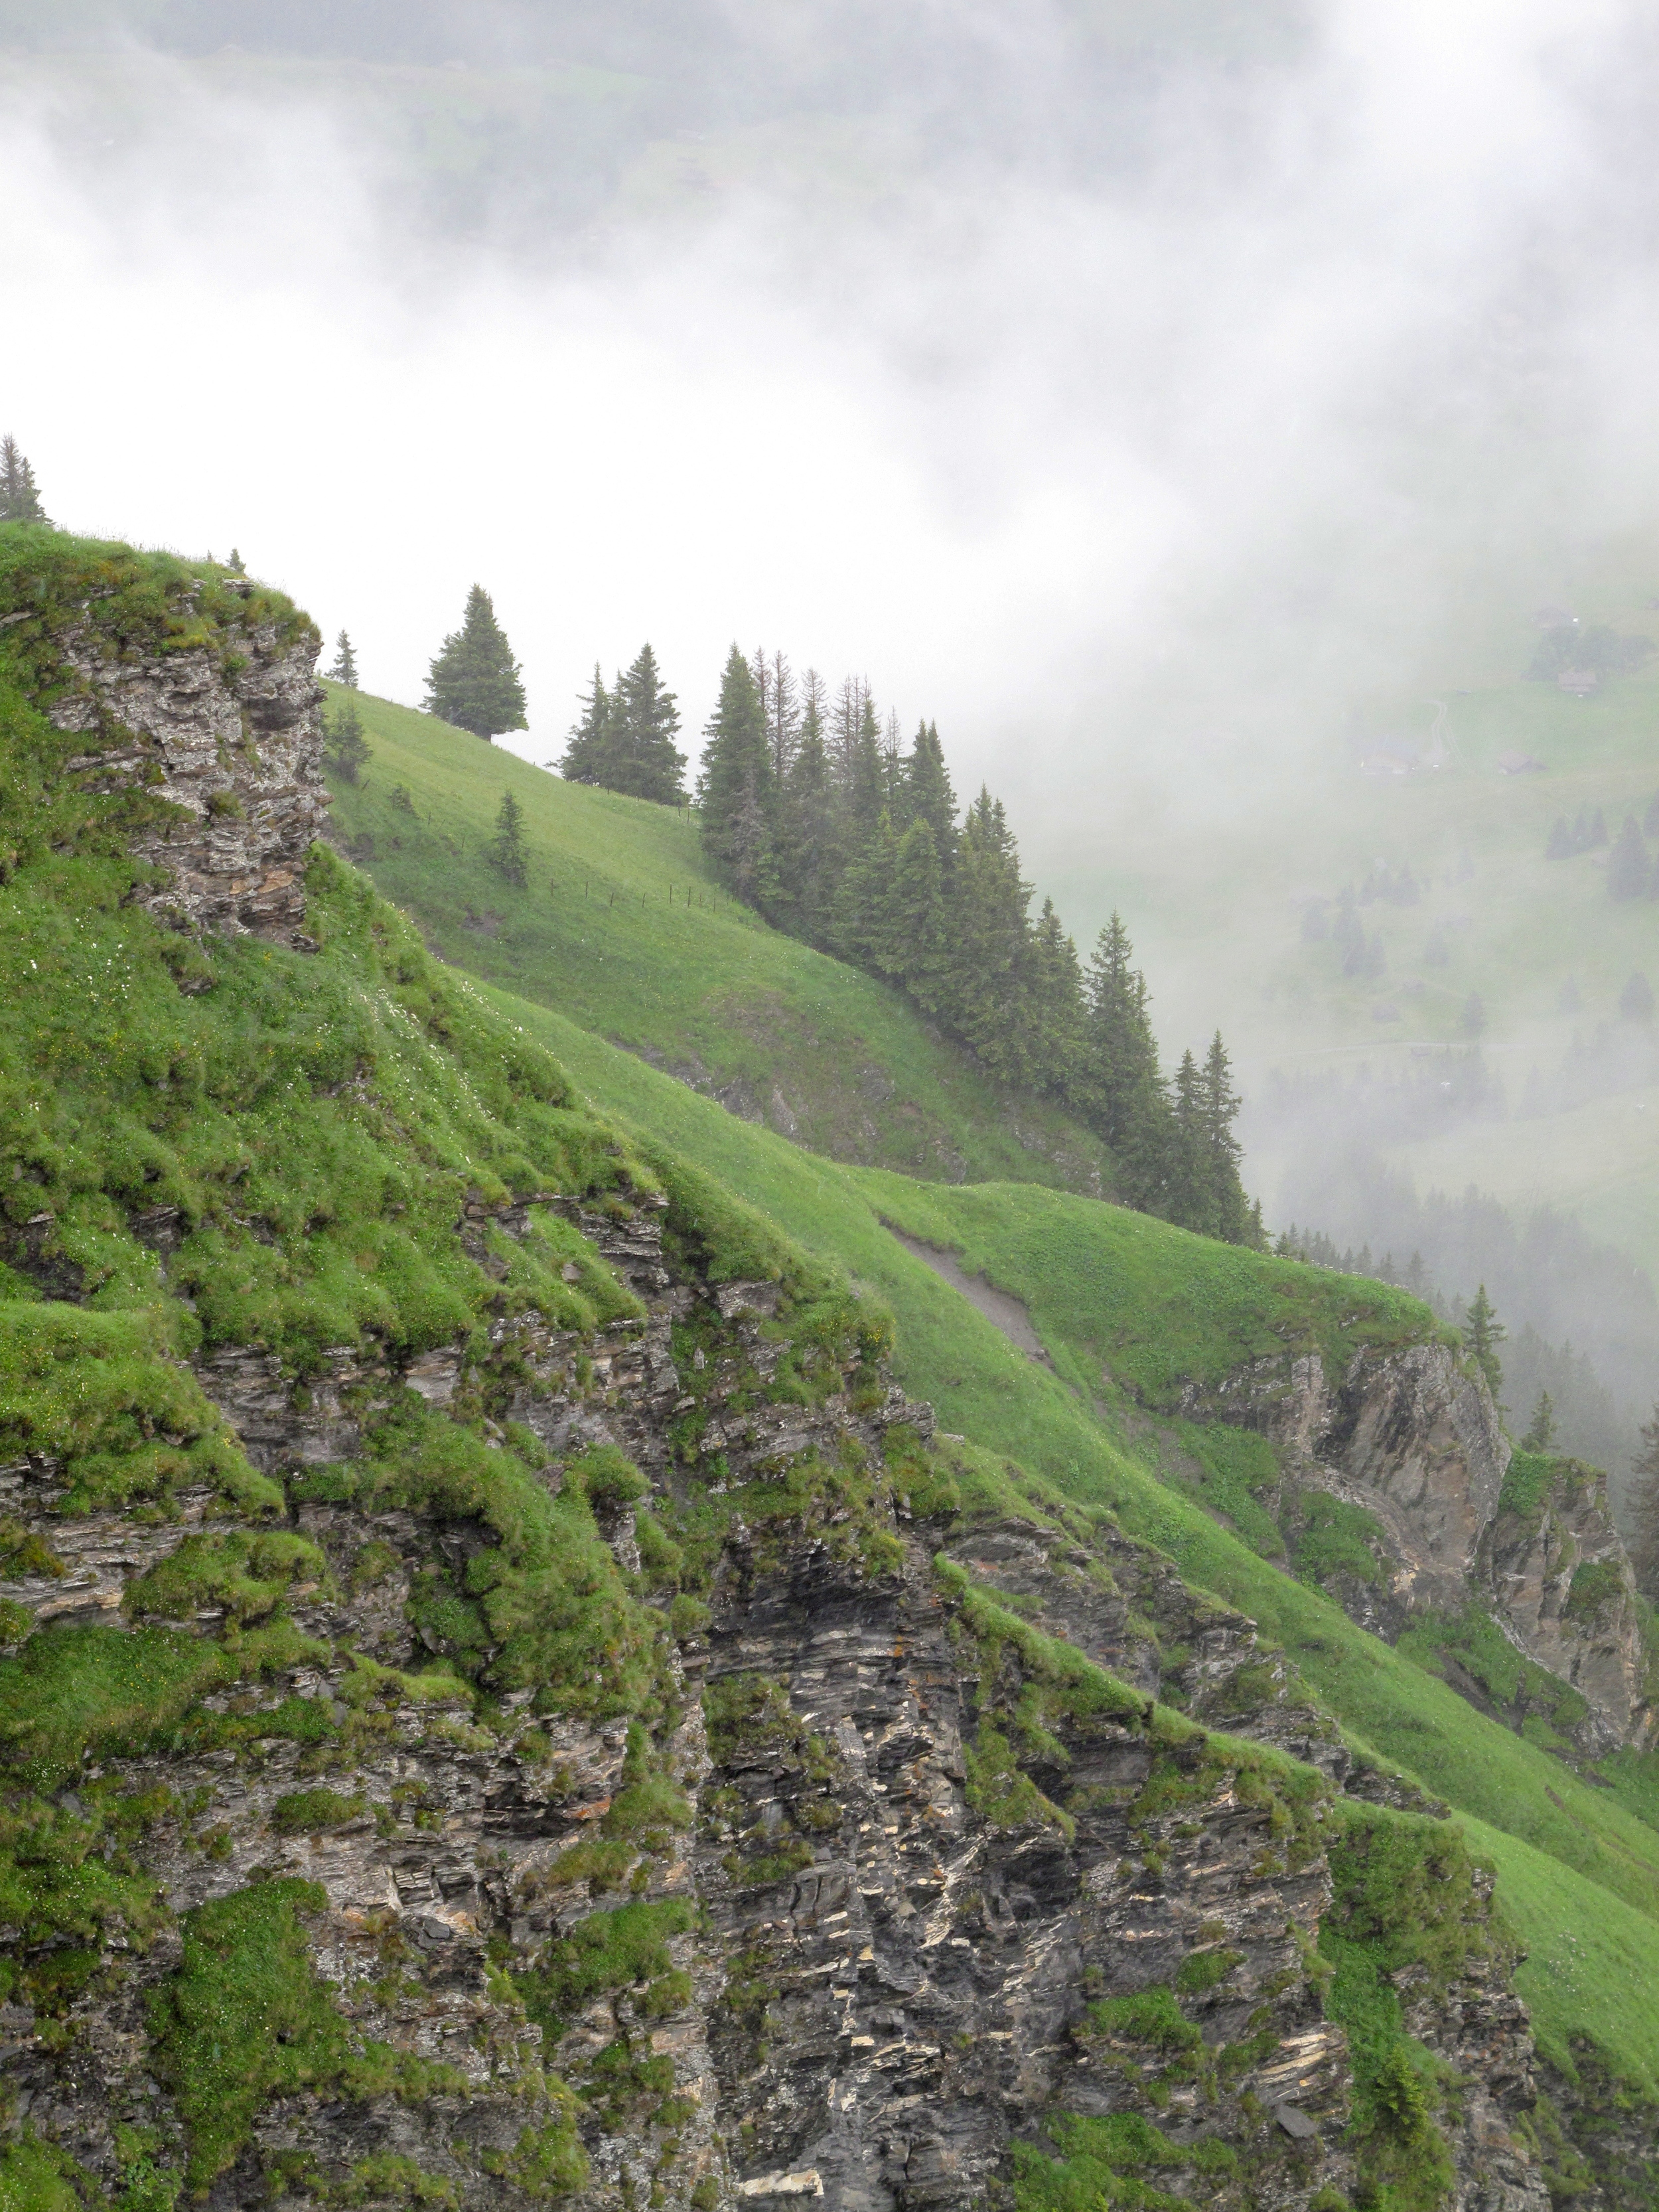 The Swiss Alps in summer time where it is still snowing on the green grass of the mountains and the pine trees.